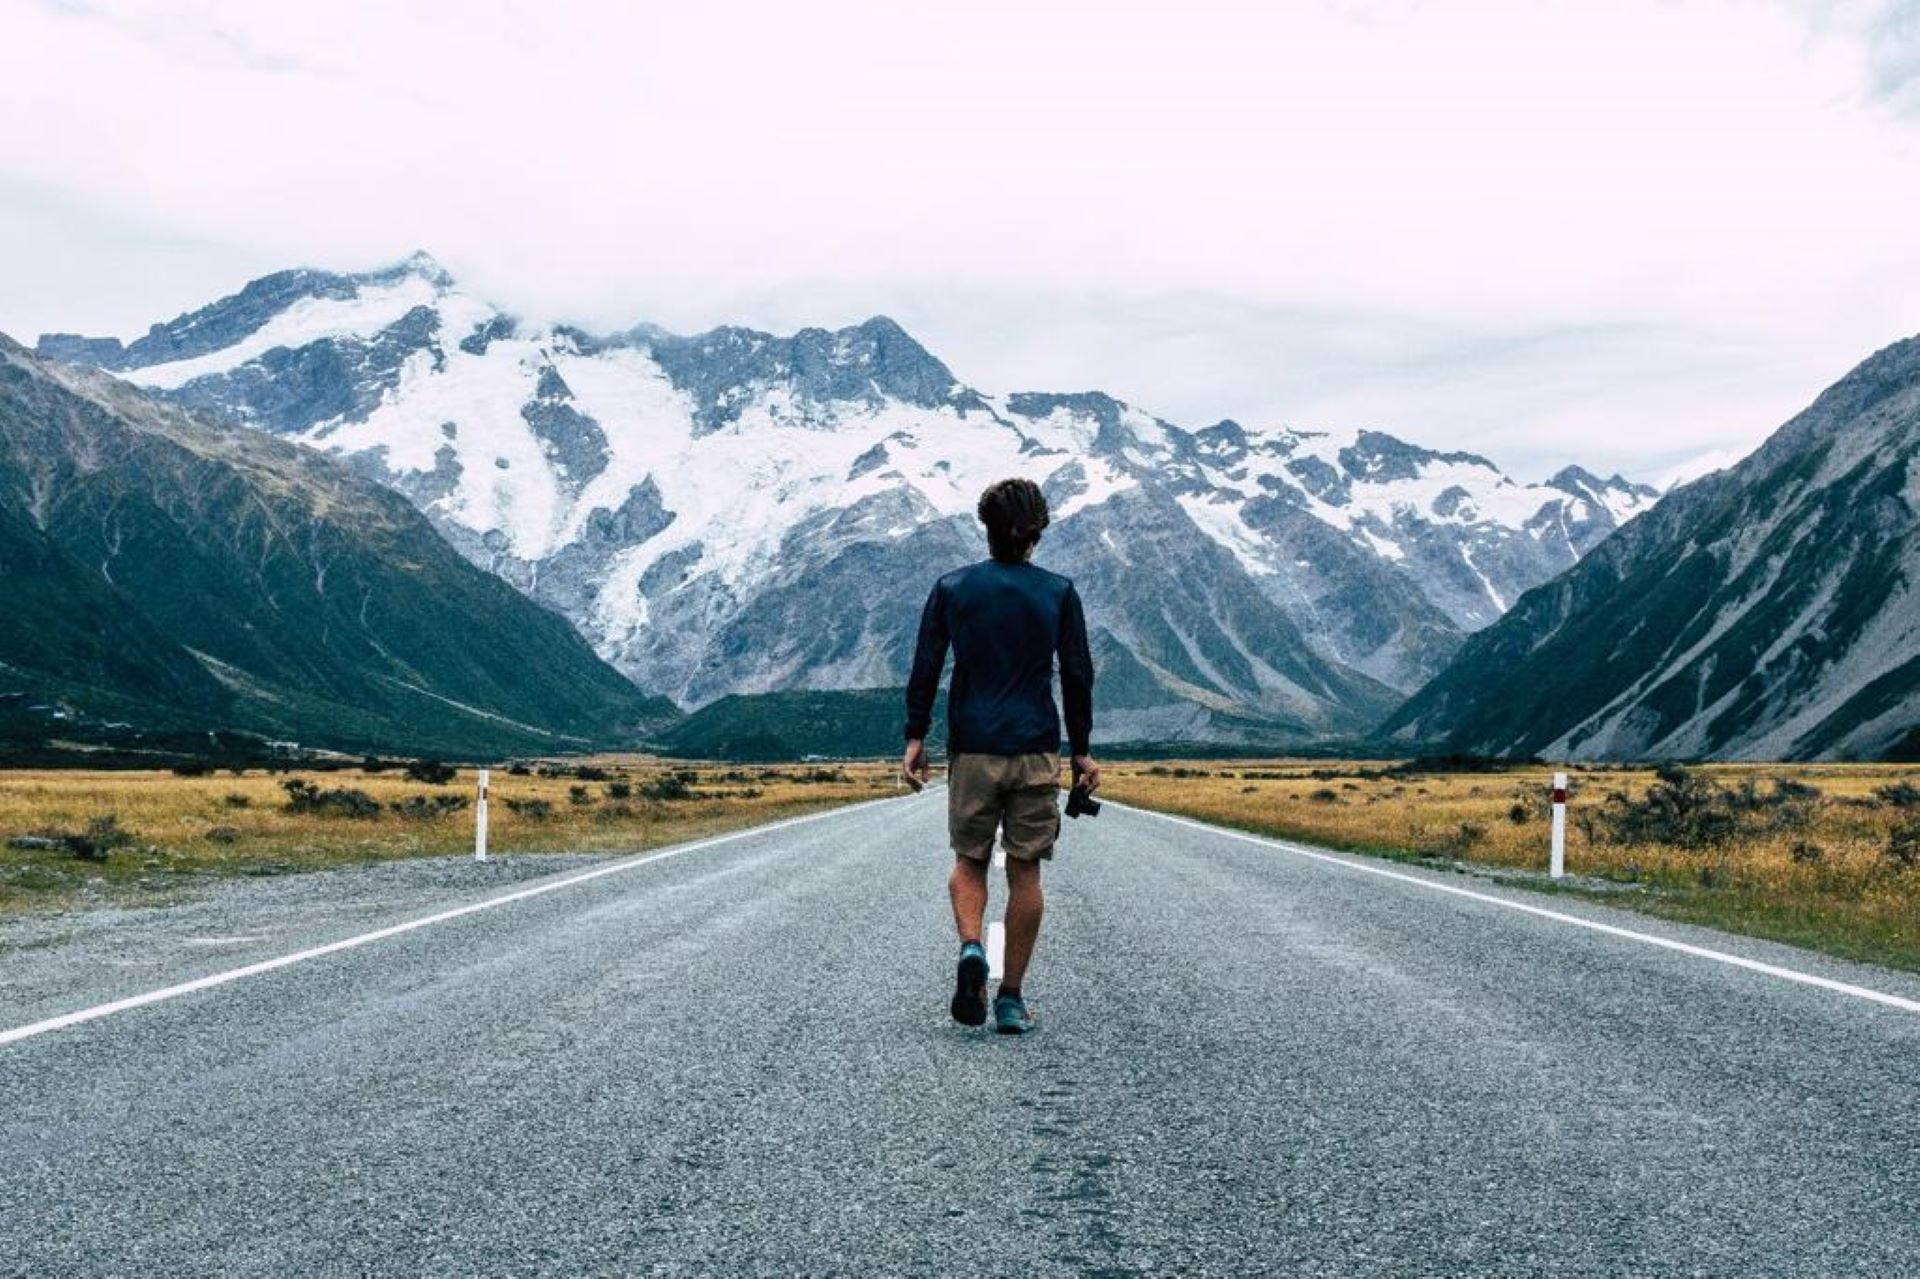 Thru-hiking New Zealand: Why you should spend more time alone